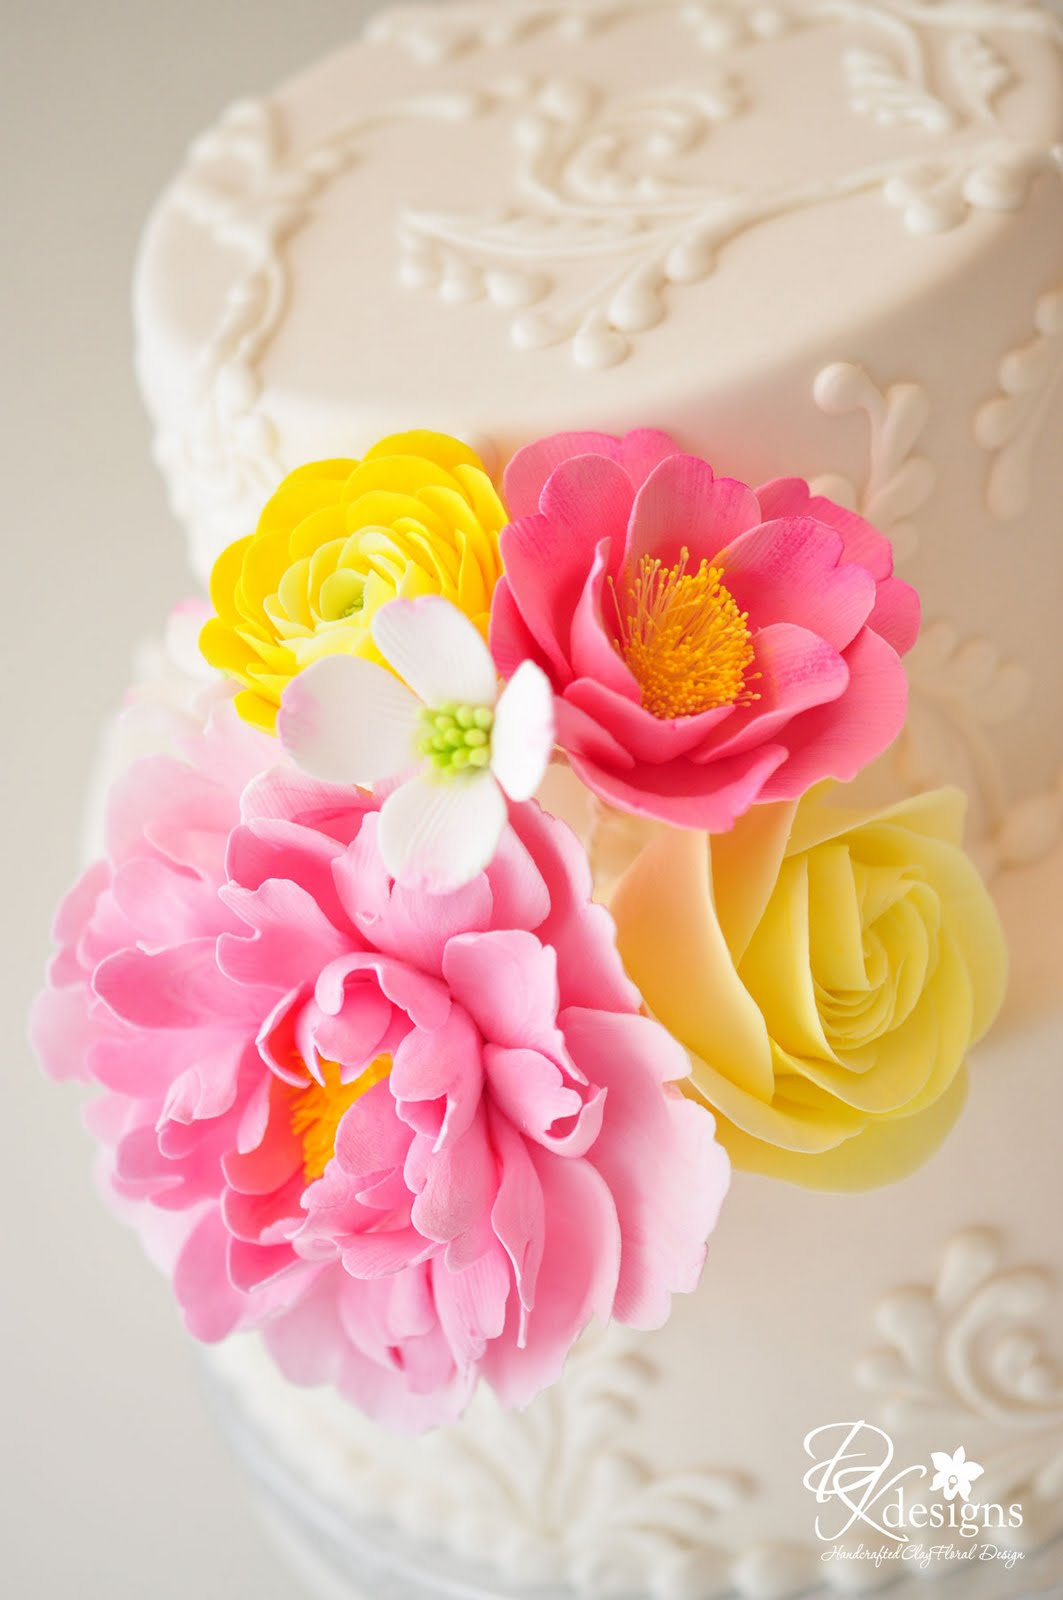 DK Designs: More Pink and Yellow Flowers...